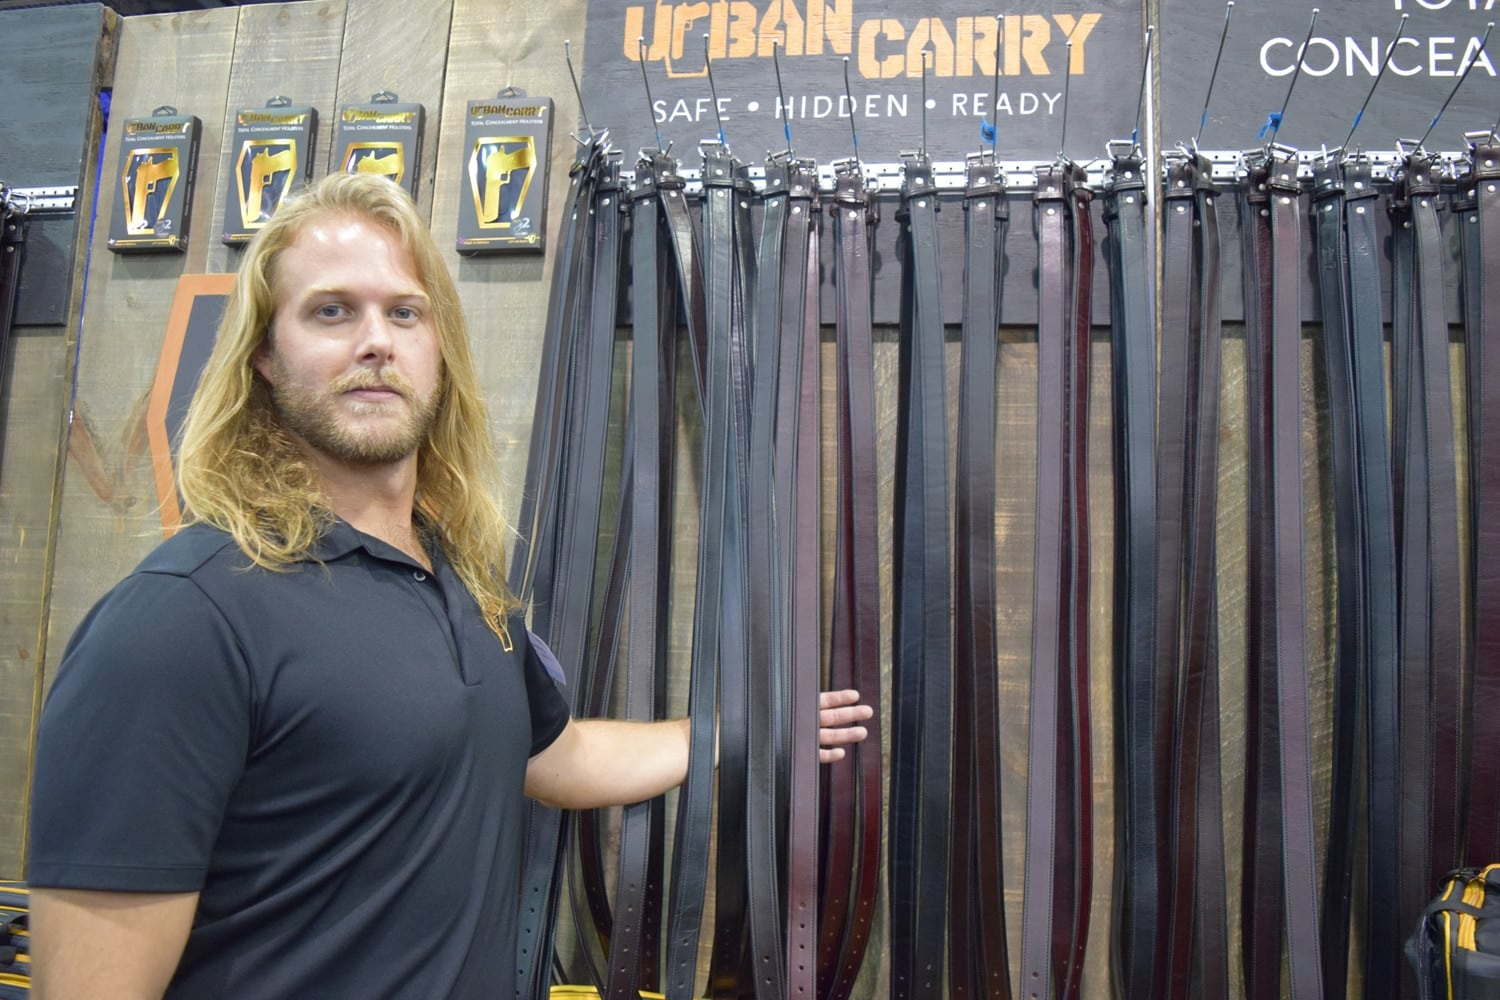 Plenty of belts at Urban Carry. The spokesman says the leather holds up so well that they outlast the buckle. (Photo: Daniel Terrill/Guns.com)